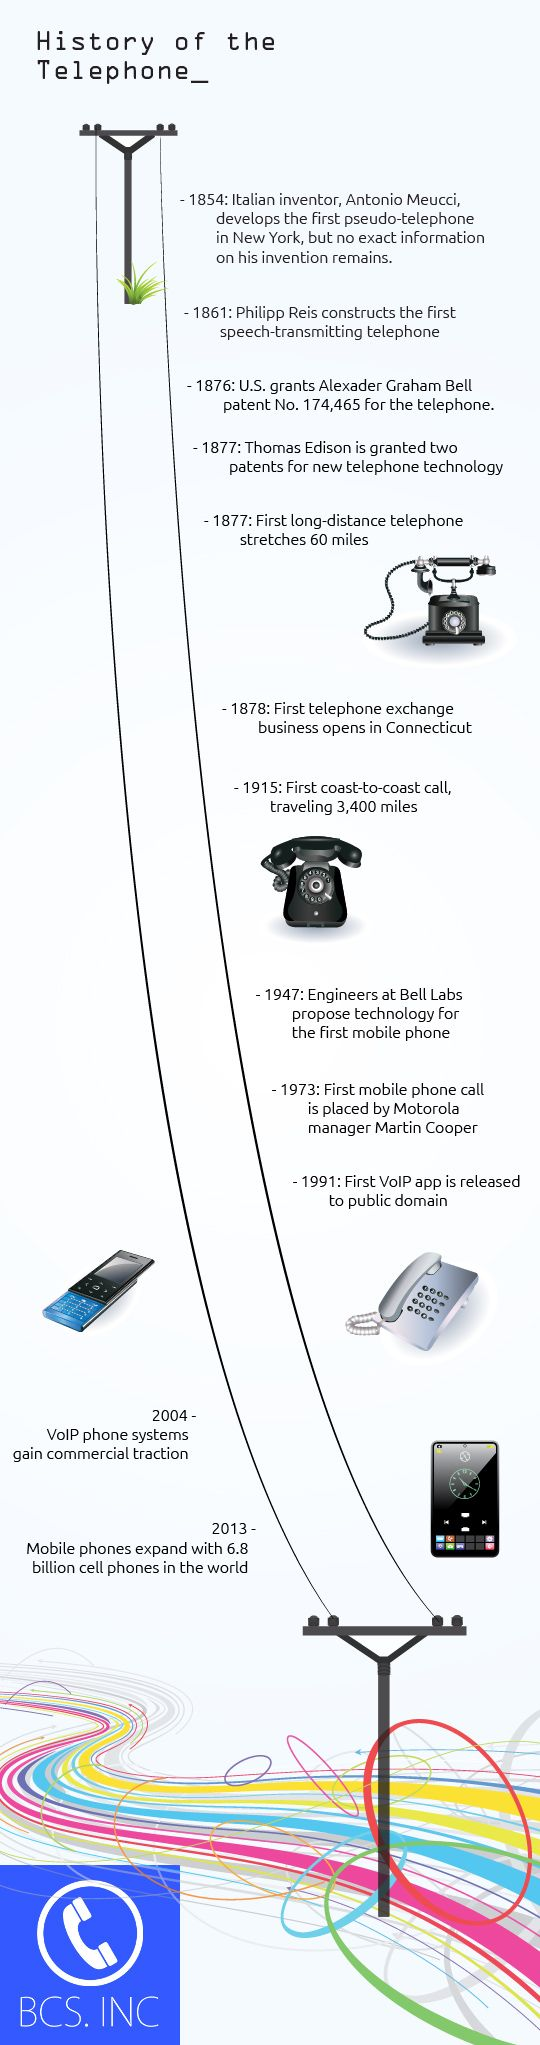 Timeline of the history of the telephone